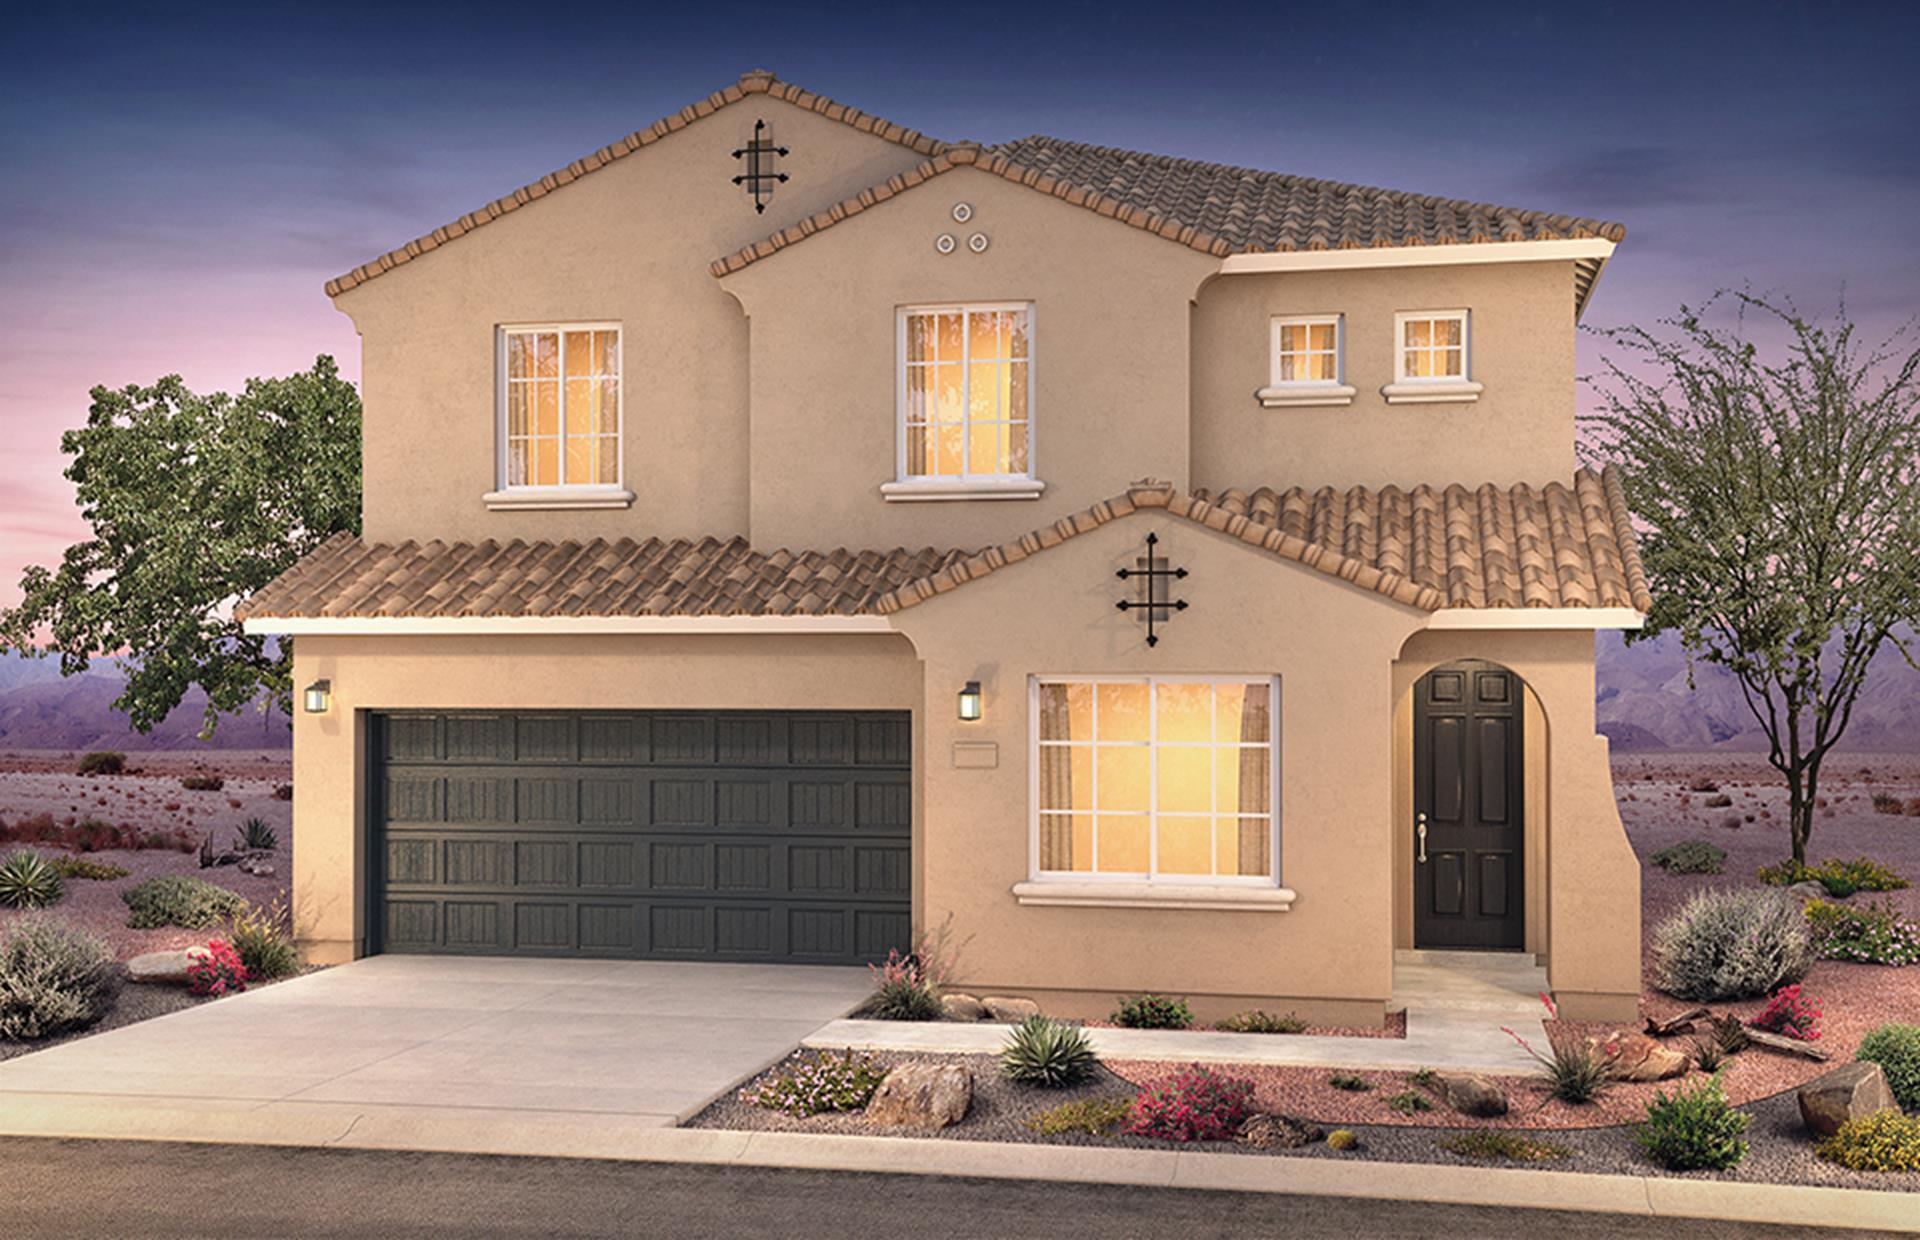 Brand new, never lived in Pulte home. Enjoy brand new appliances, new carpet, new A/C, new tank-less hot water heater, green built, brand new community in Rio Rancho, Highly rated schools, and so much more! Under construction.